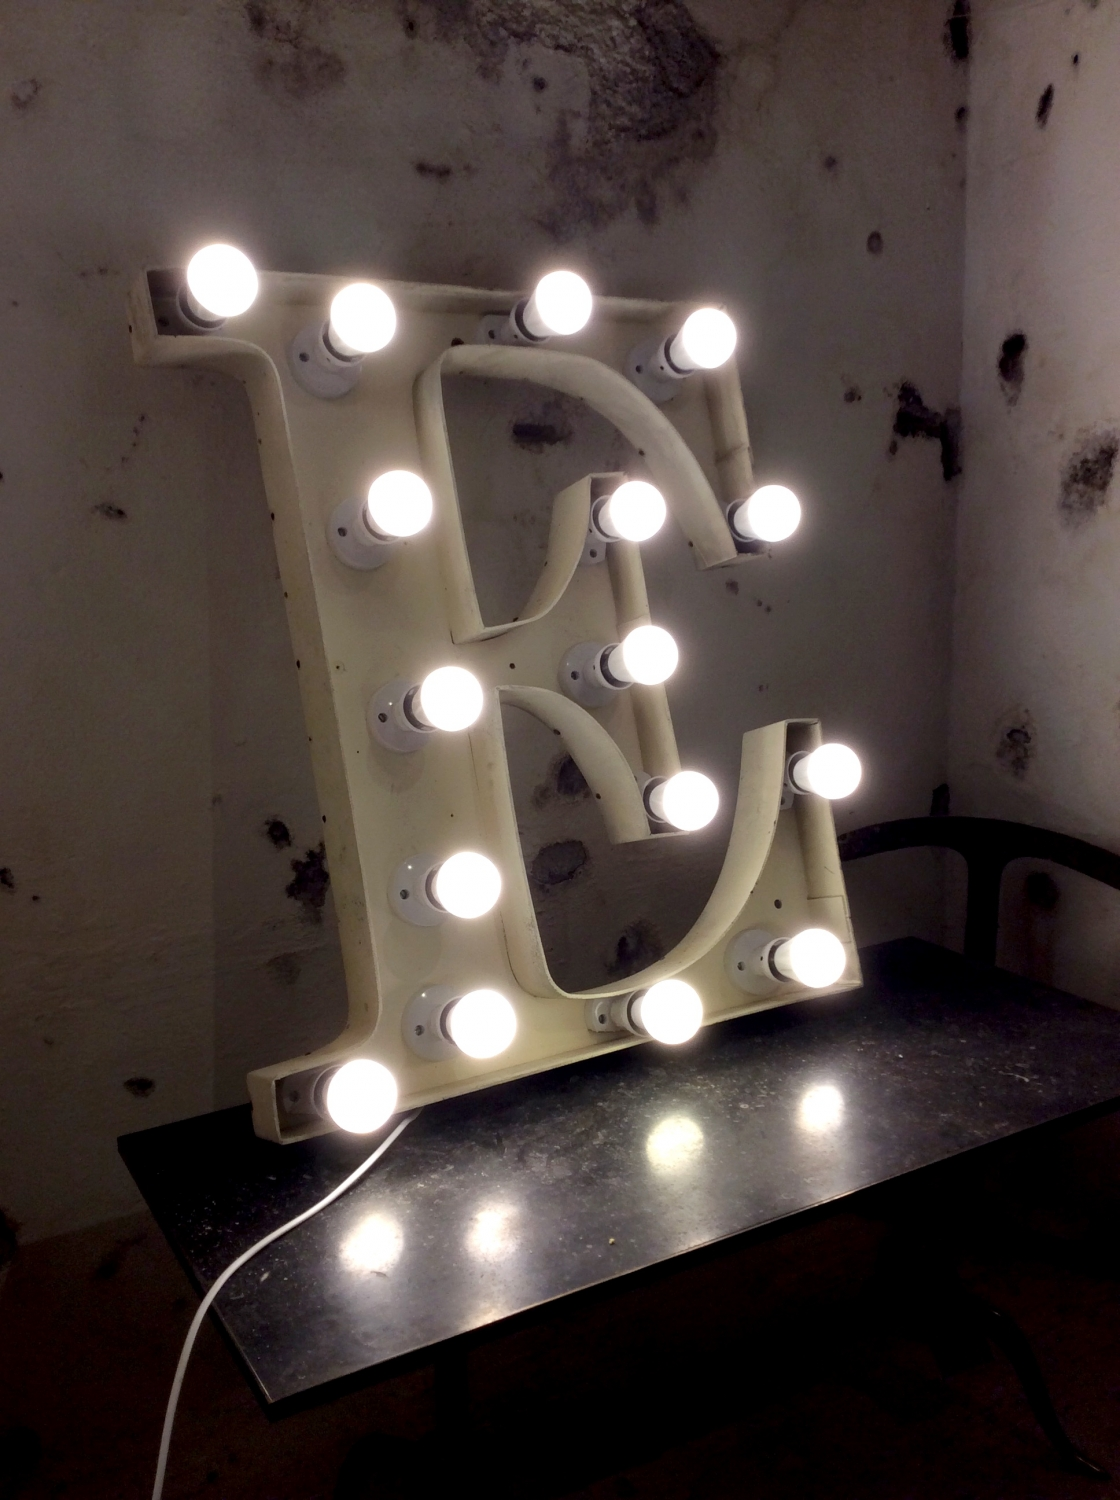 Giant Neon French Vinatege Letter E